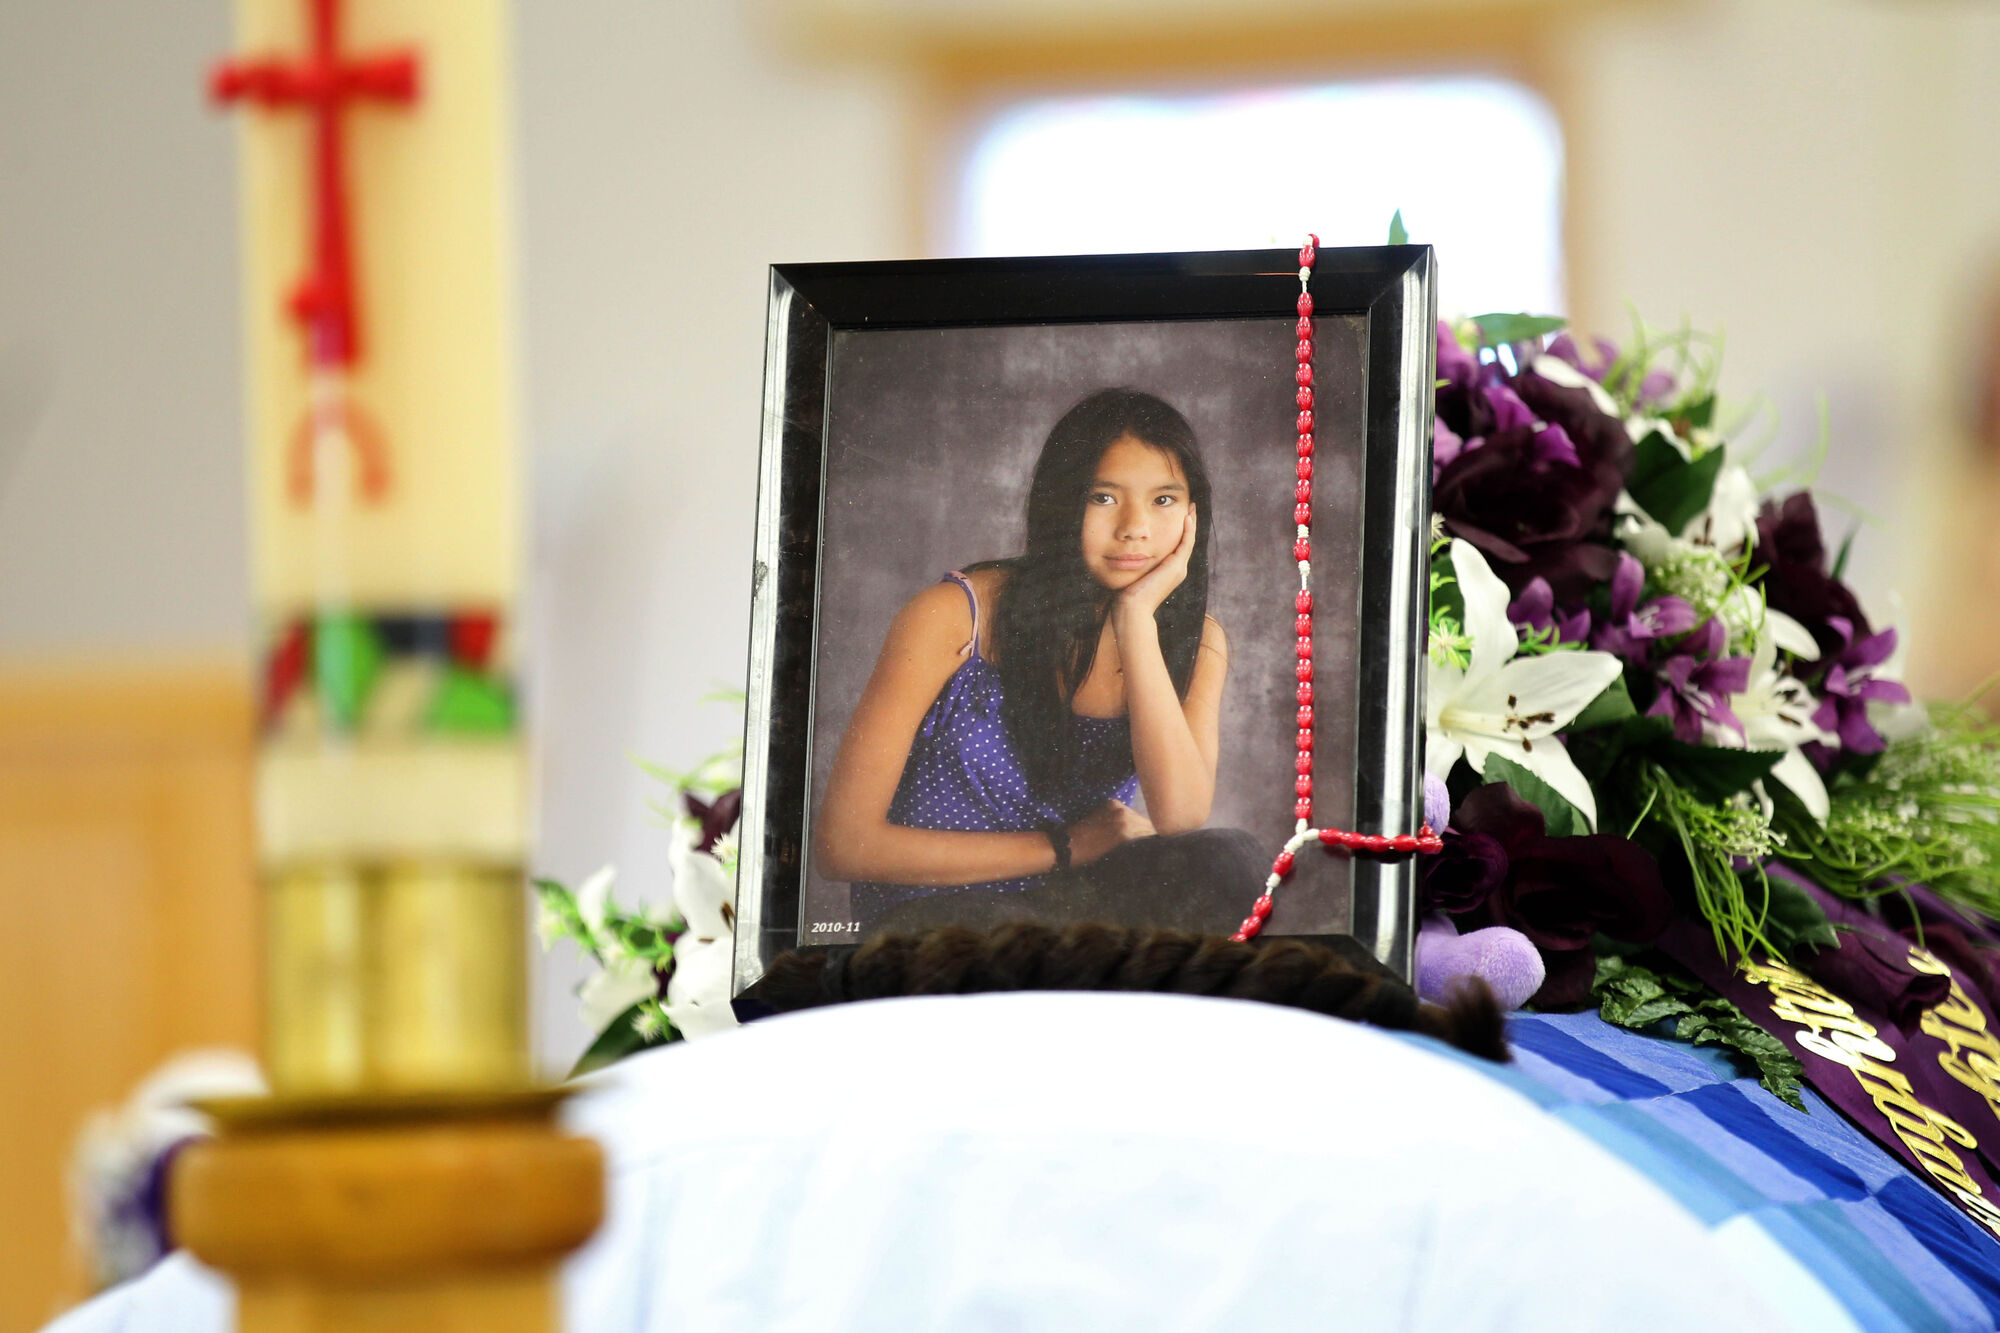 Investigators have sent Tina Fontaine's clothing and other items to a forensic lab in Austria that says it has helped solve 8,000 criminal cases.